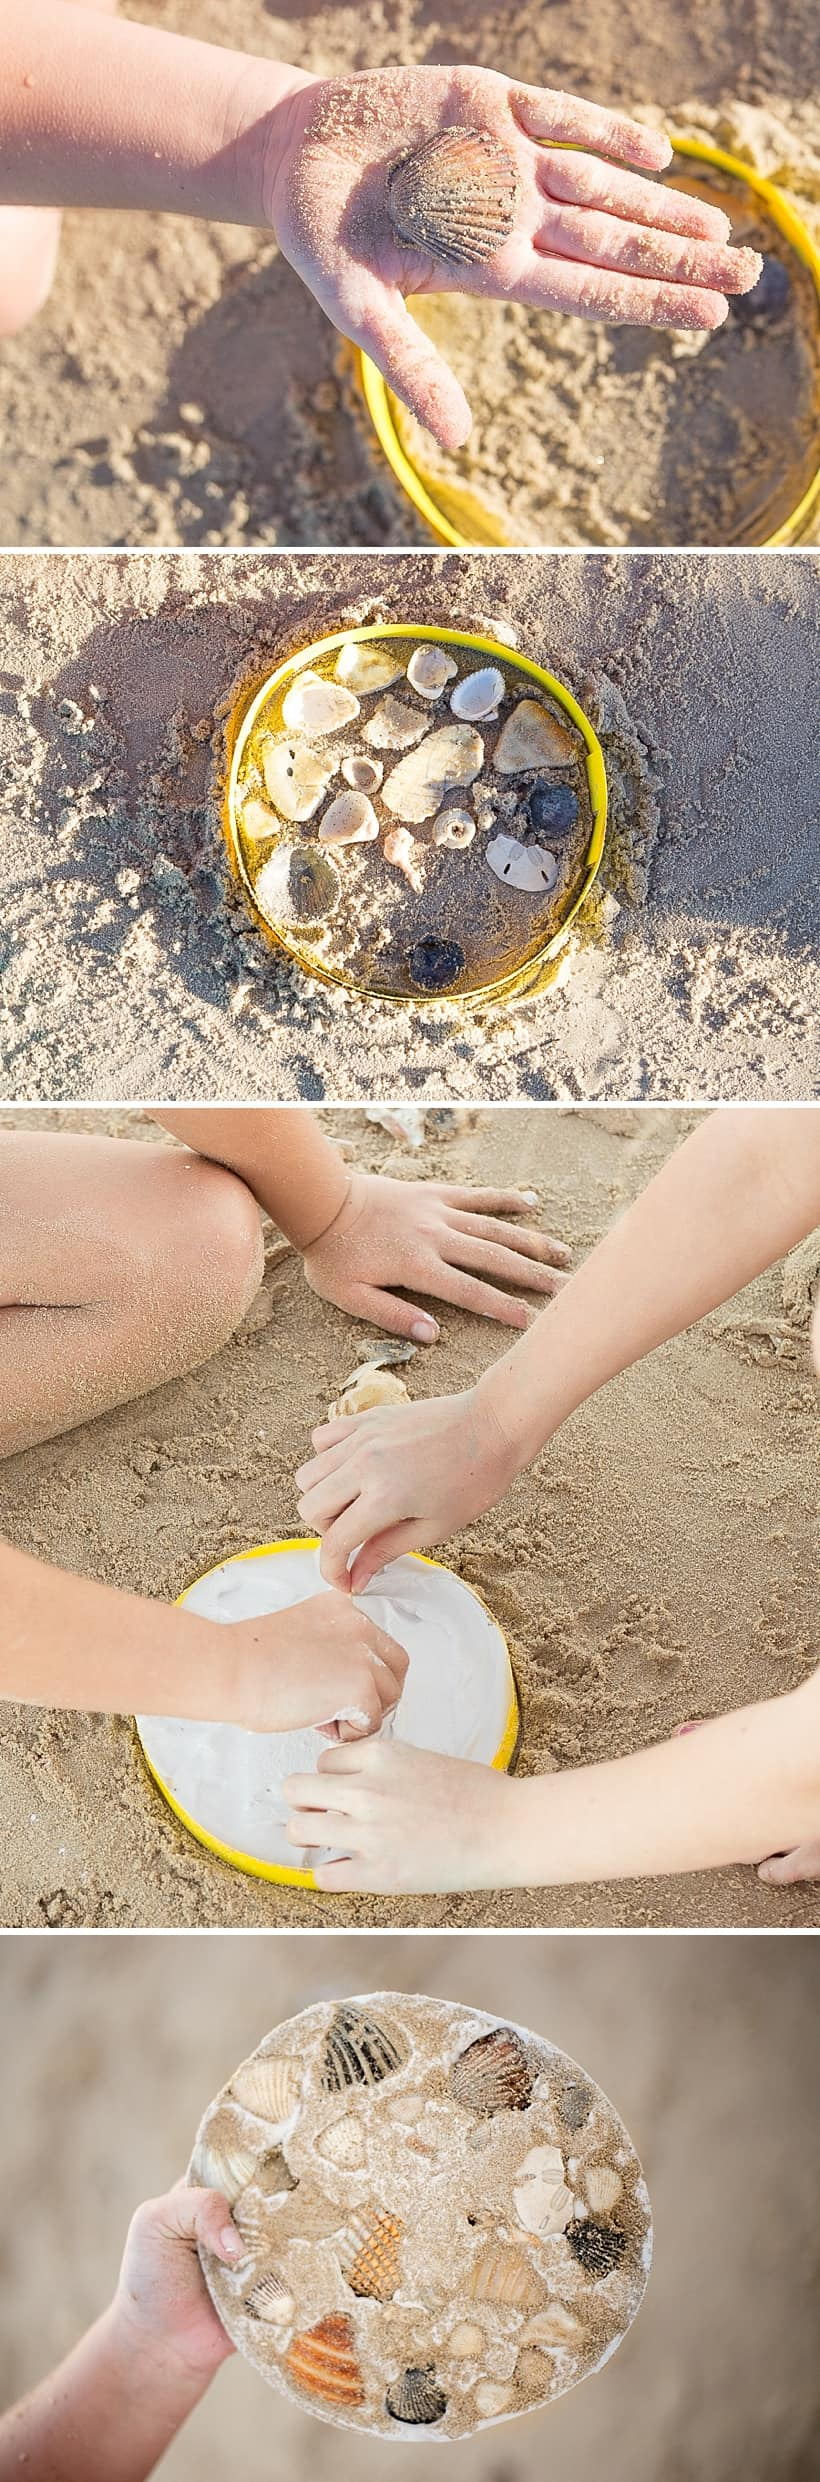 This sand casting kit for children is crazy cool. What a great way to have fun at the beach and make memories on a family vacation. *Bookmarking these travel ideas for later. Must-read for parents.